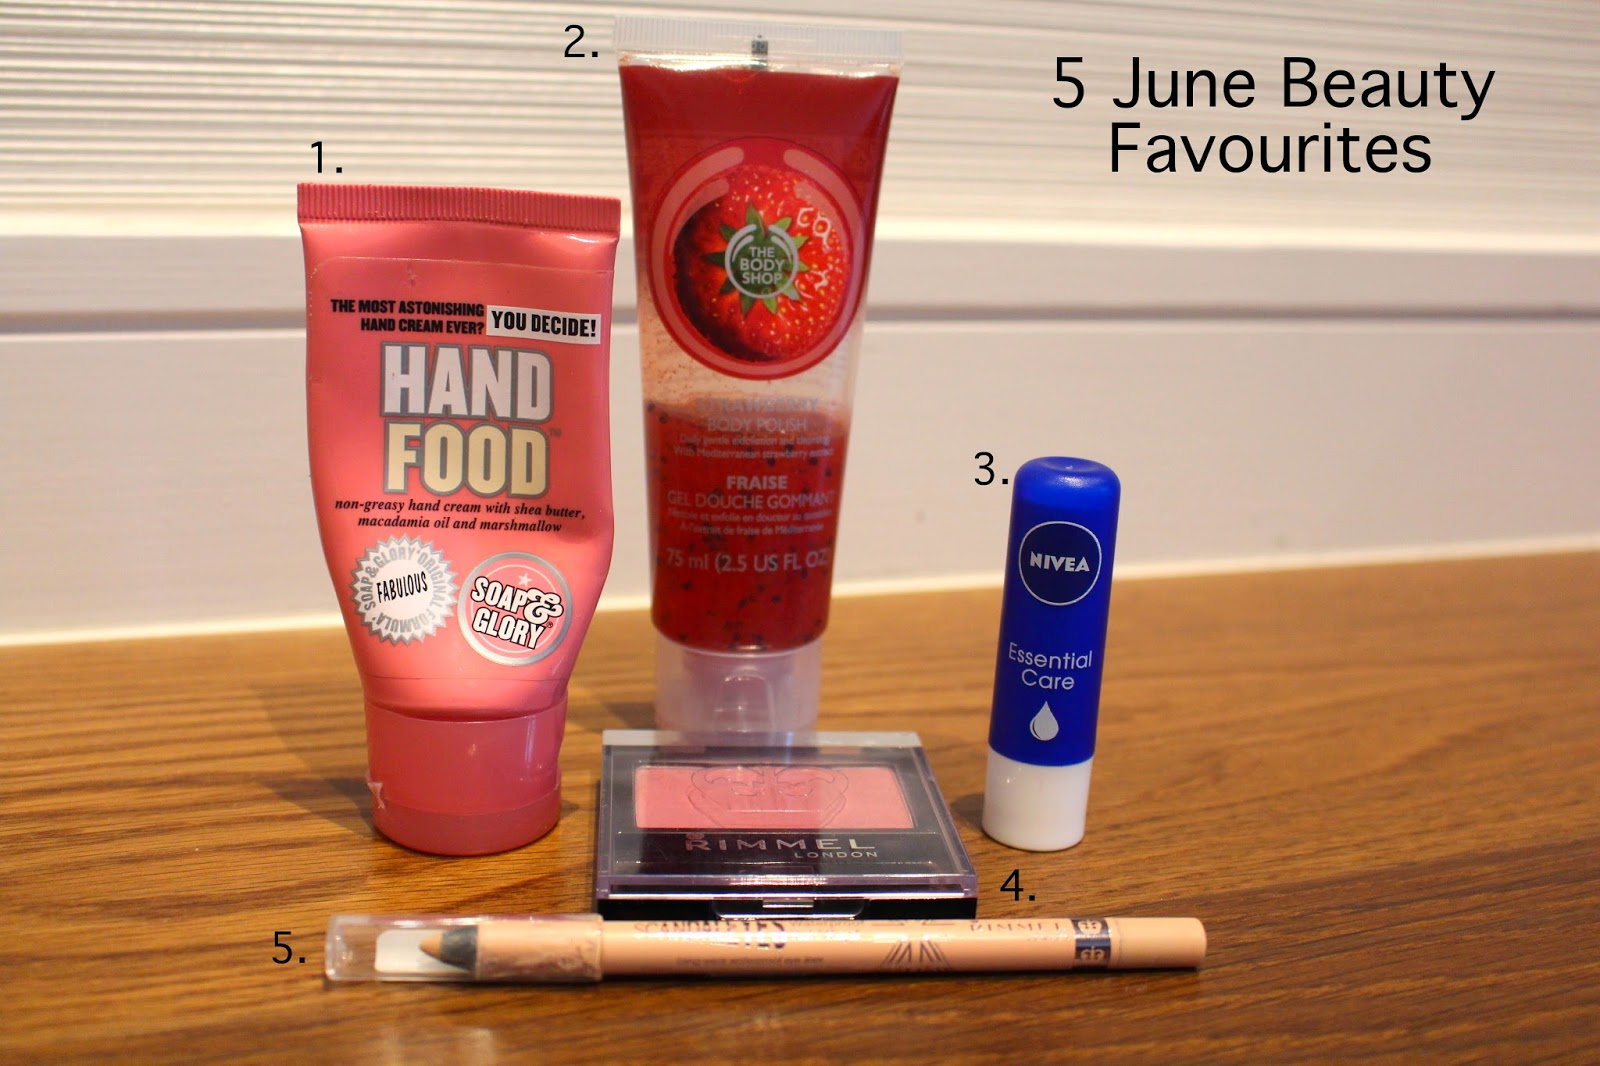 My 5 favourite beauty products for june 2014, beauty favourites, makeup favourites, monthly favourites, rimmel scandaleyes nude, soap and glory hand food, the body shop, nivea, rimmel, rimmel genuine plum blush